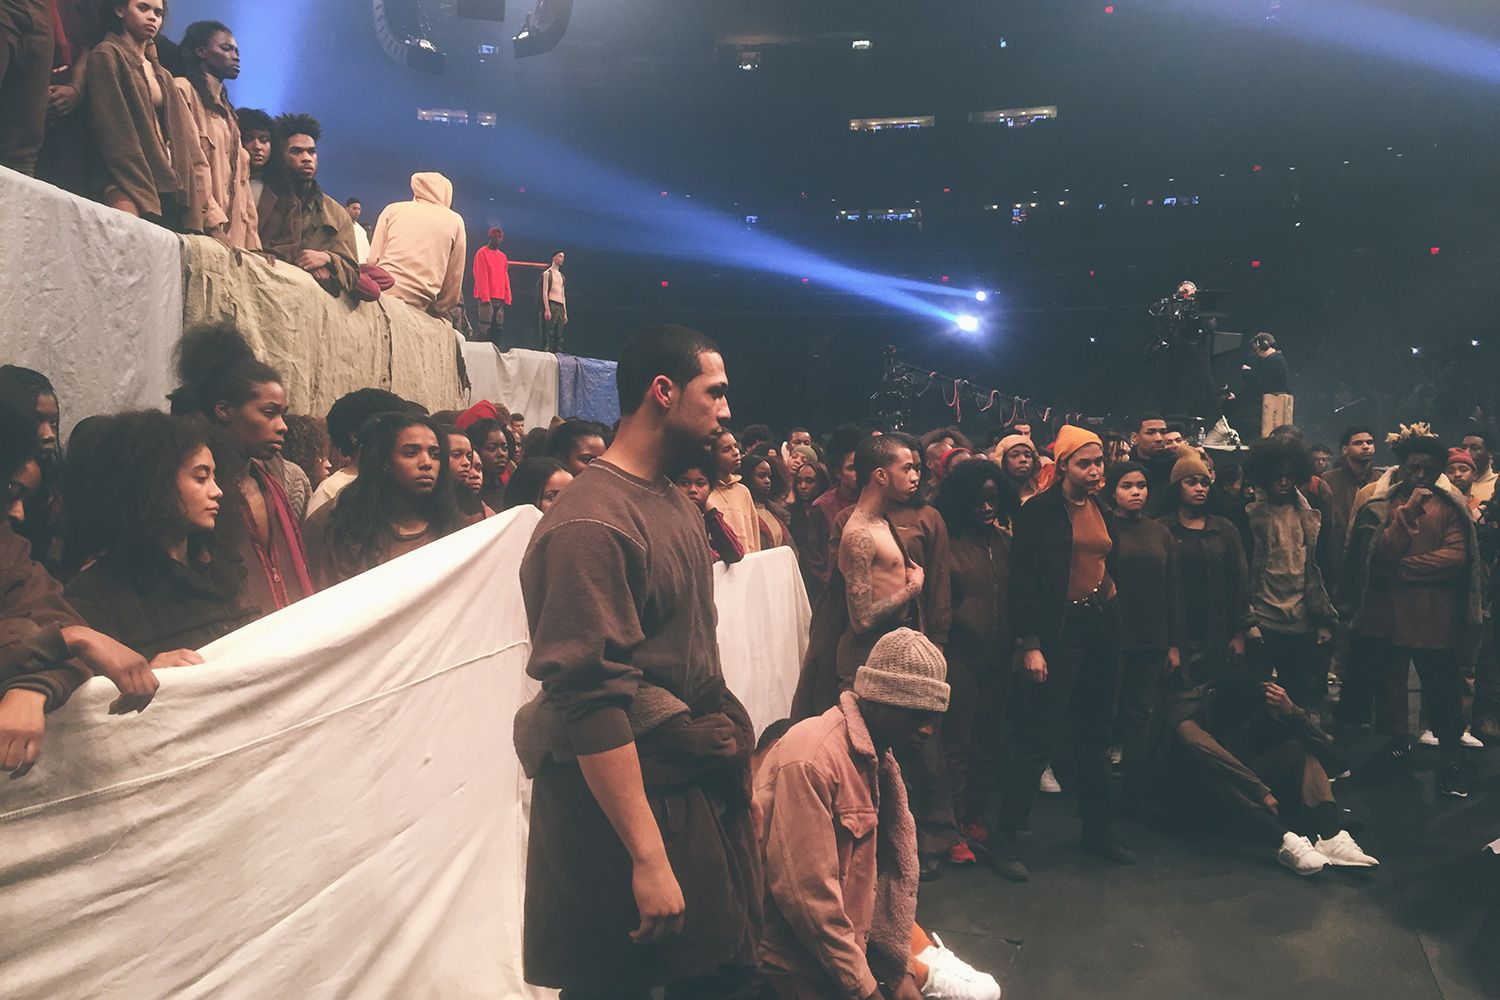 A Look At Kanye S The Life Of Pablo Debut Yeezy Season 3 Show Yeezy Season 3 Yeezy Season Seasons